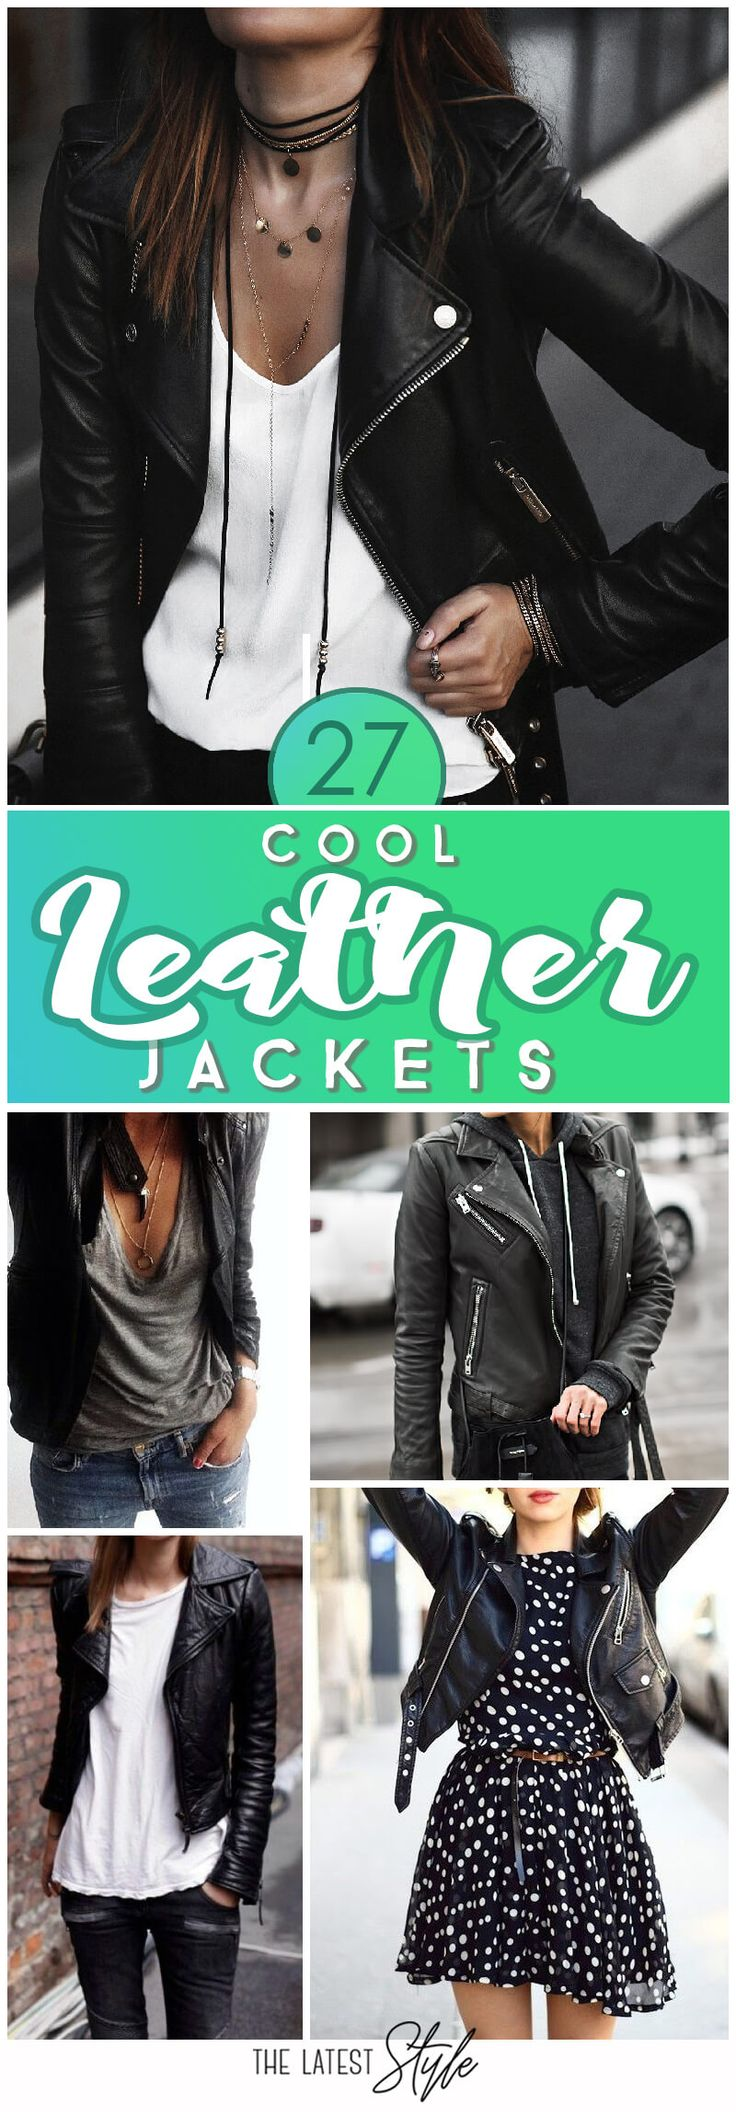 Best 10+ Leather jacket outfits ideas on Pinterest ...